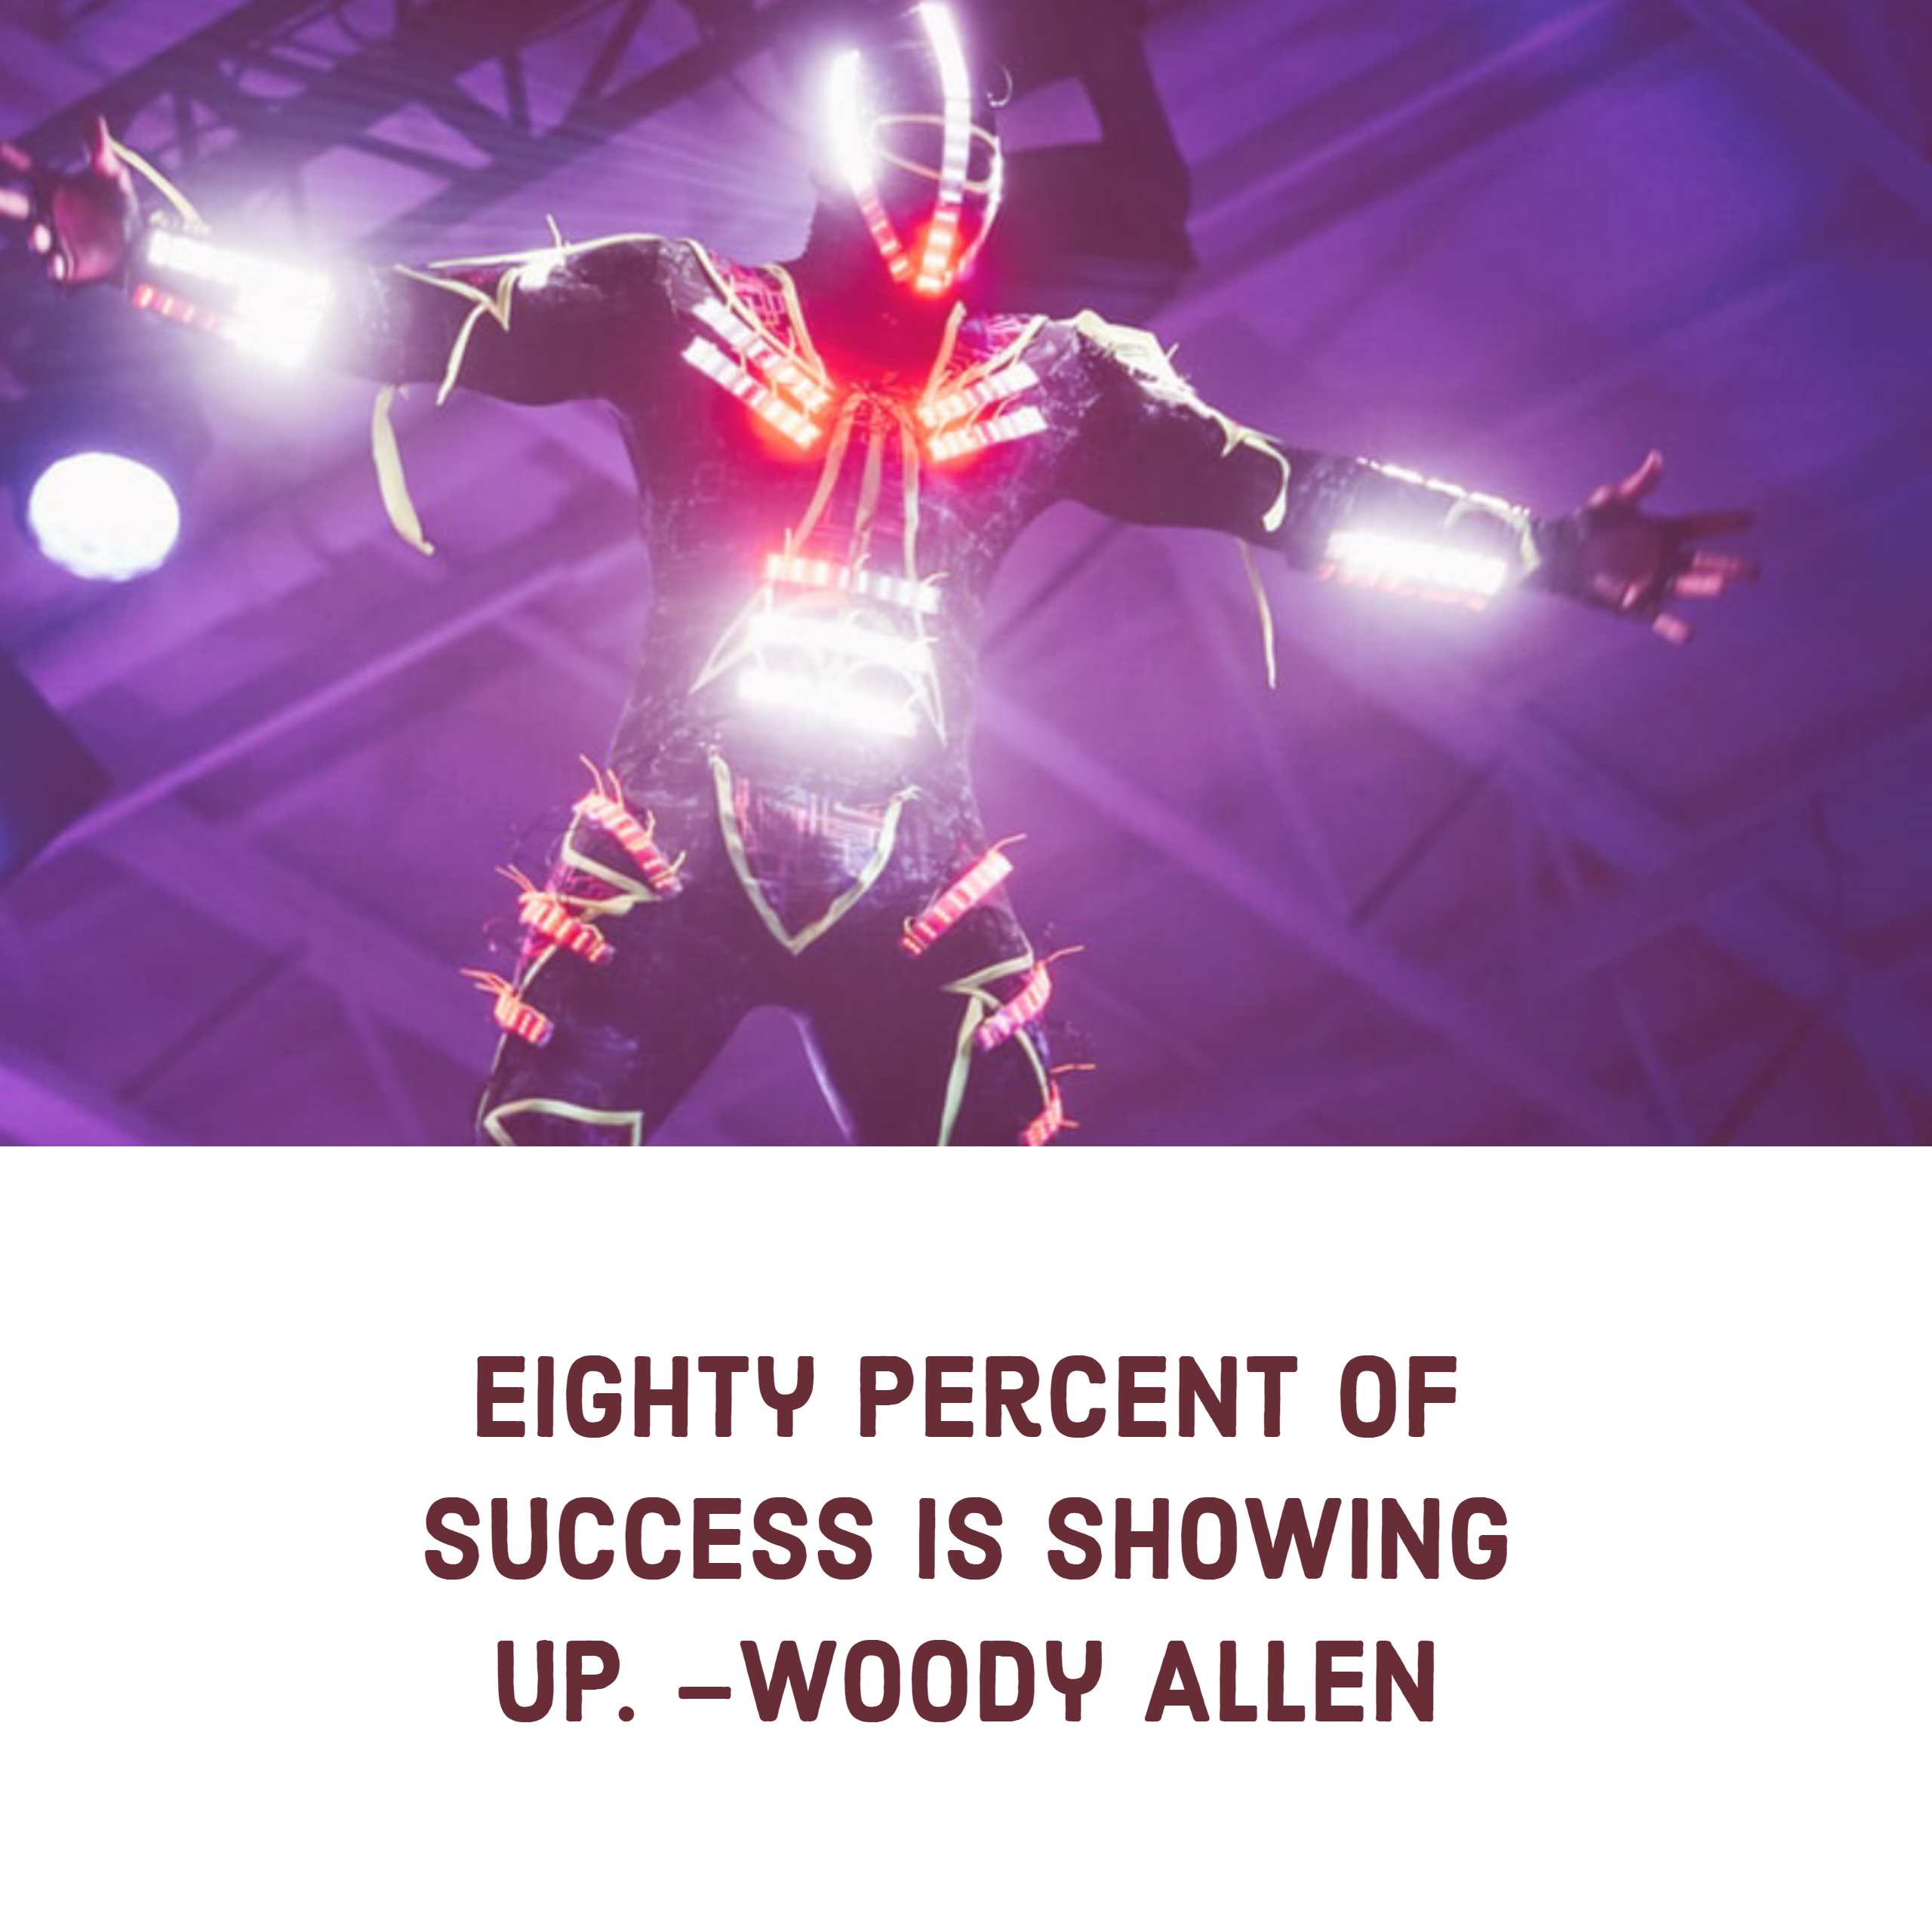 Eighty percent of success is showing up. –Woody Allen